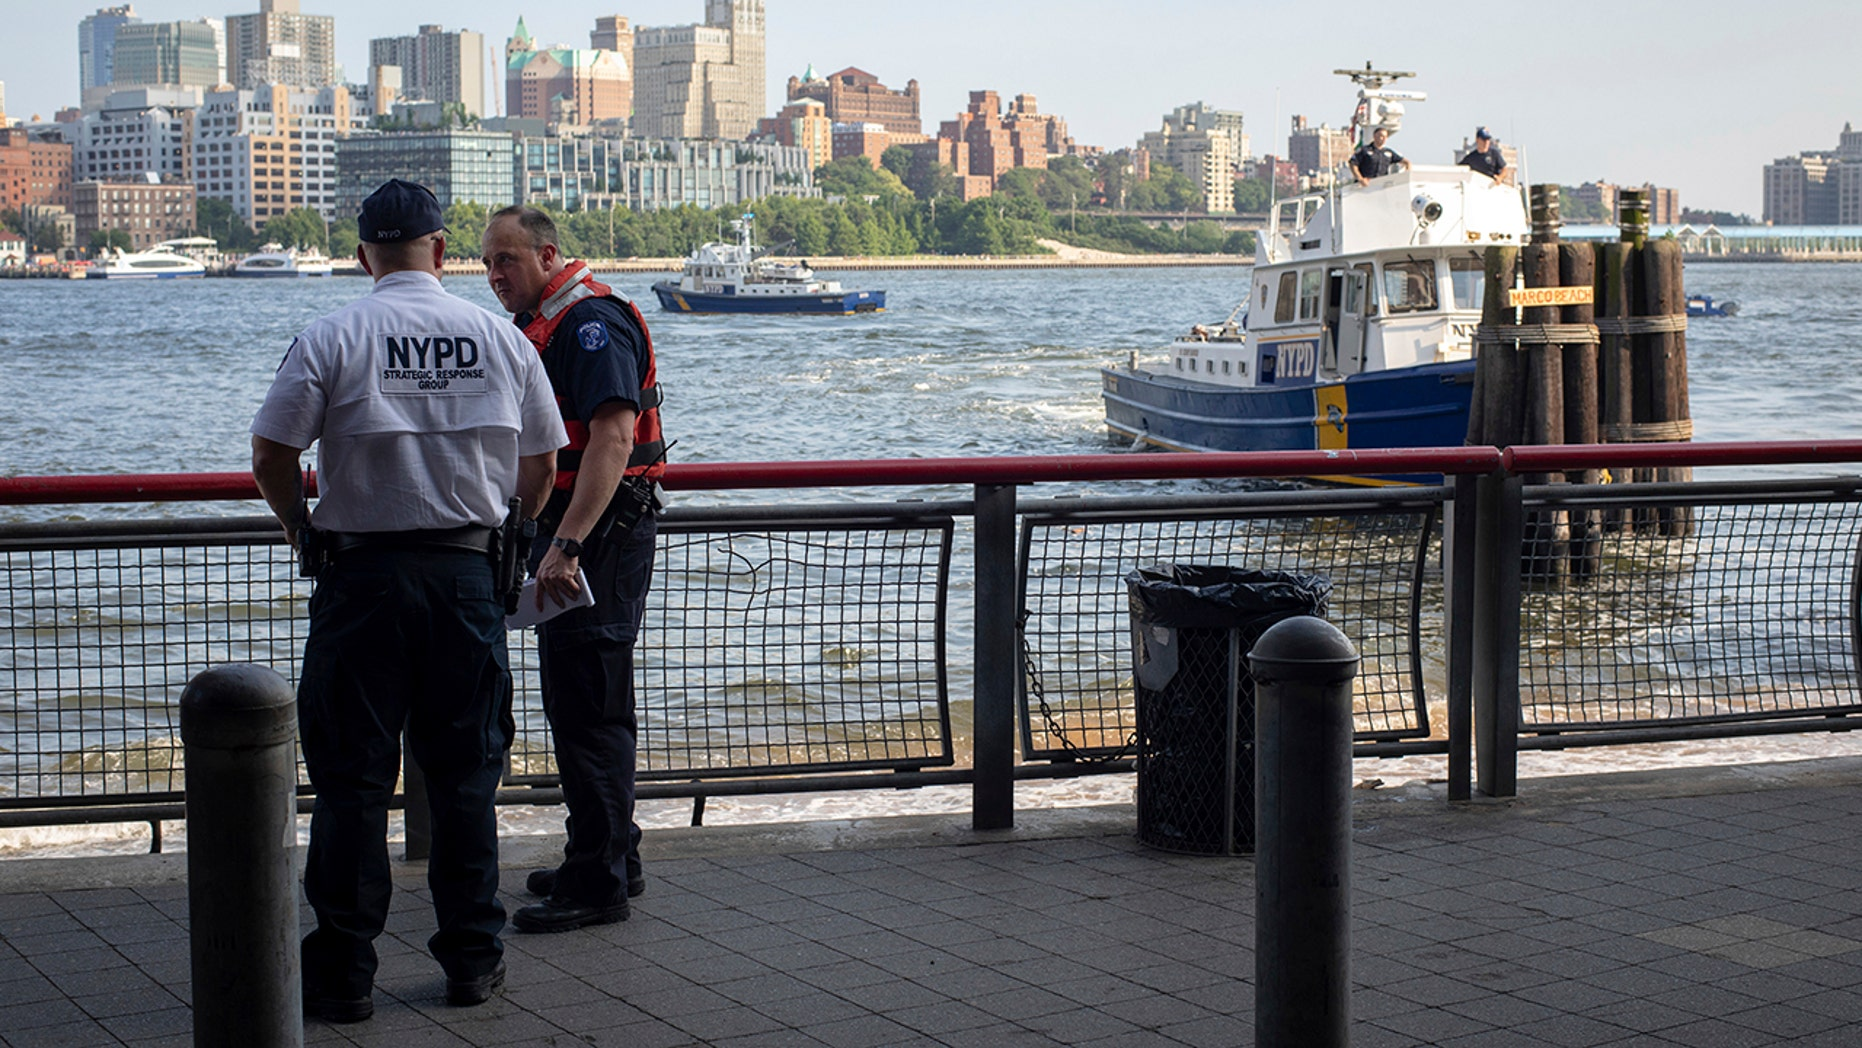 Authorities investigate the death of a baby boy who was found floating in the water near the Brooklyn Bridge in Manhattan, on Sunday, Aug. 5, 2018, in New York.